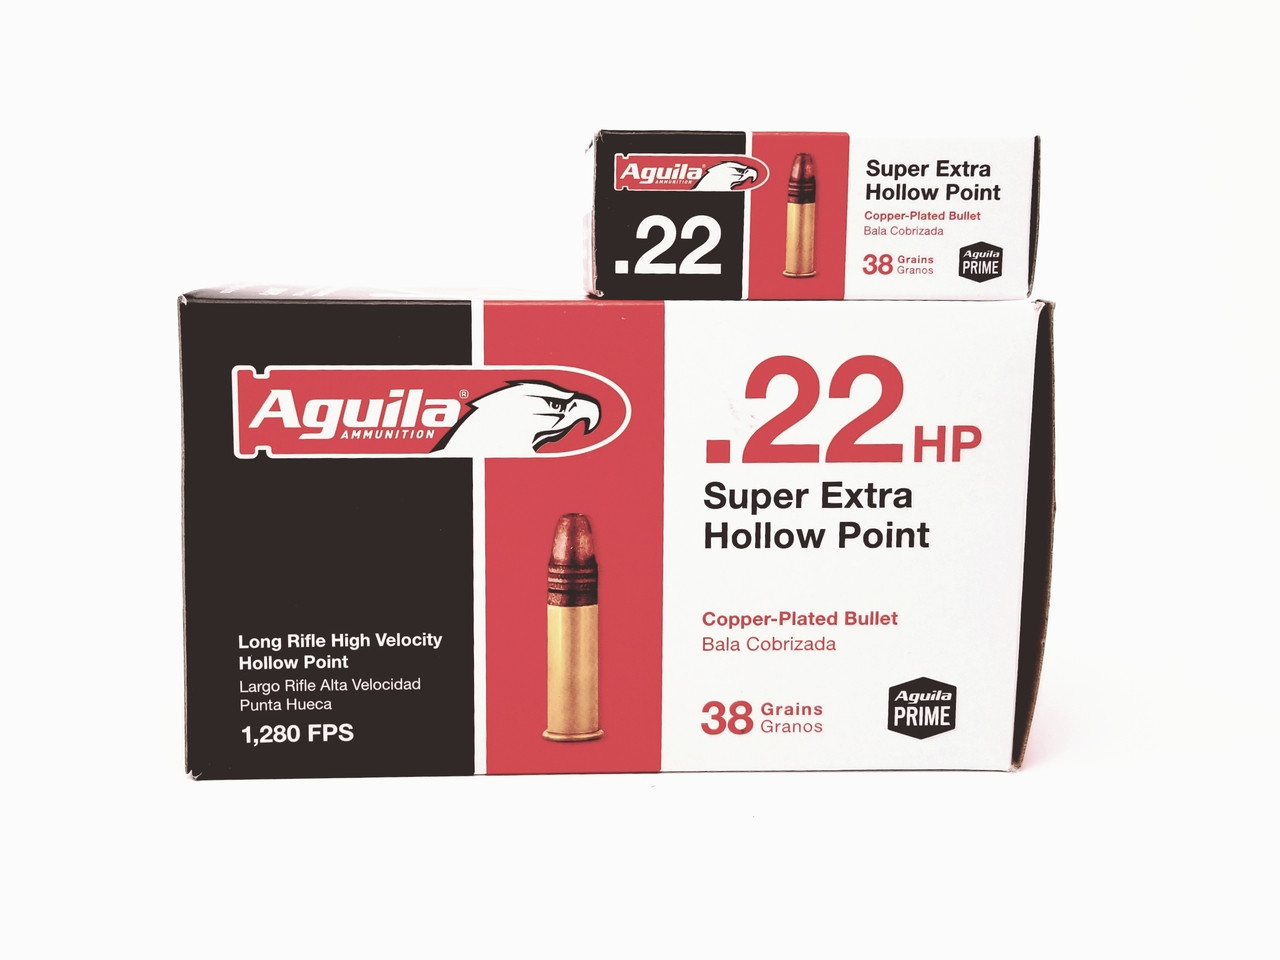 22lr Ammo Ammo For Sale  Deals on 22lr ammo from various